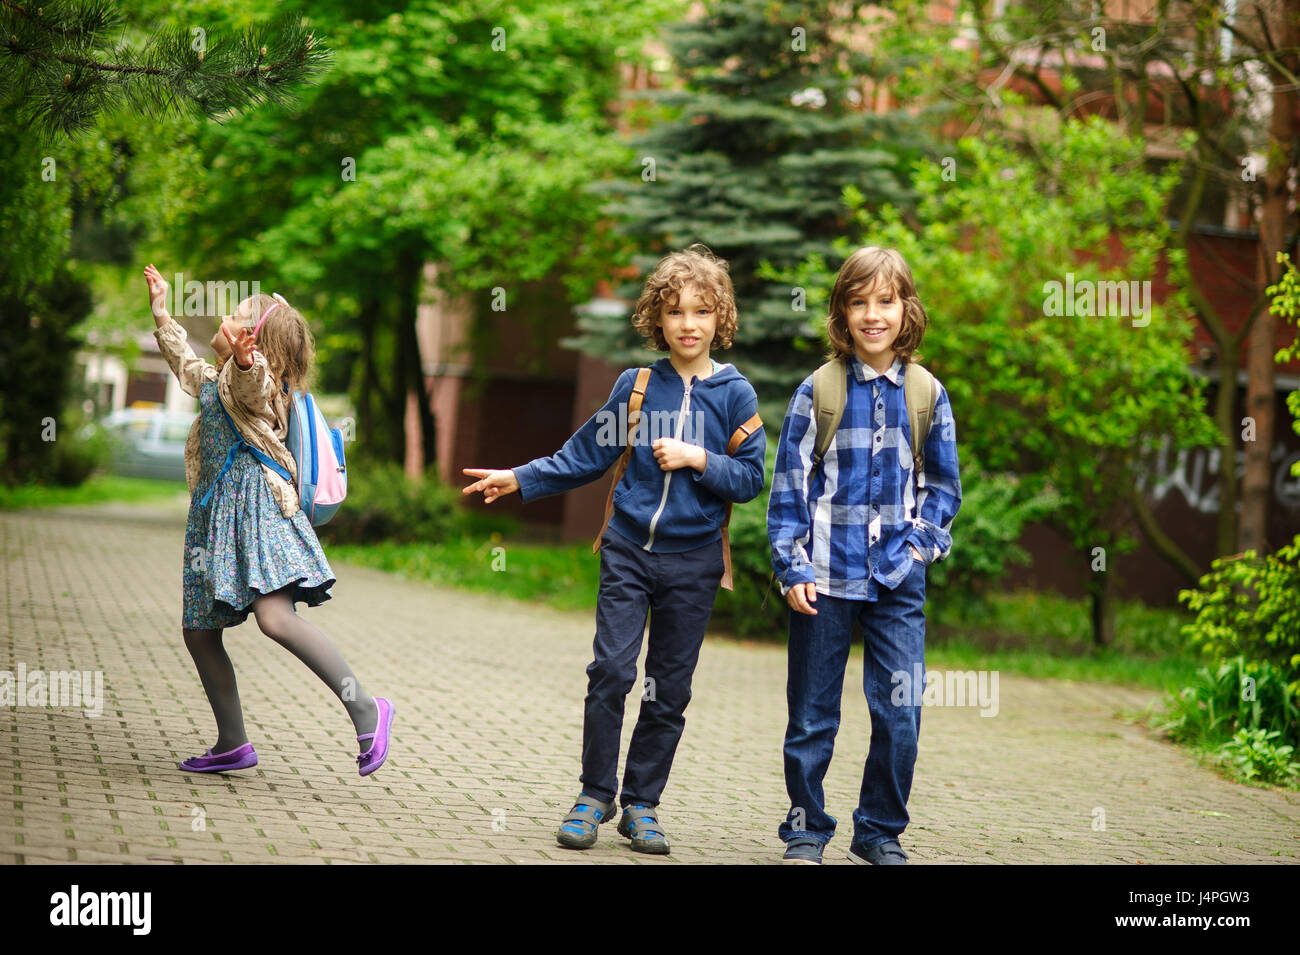 Three little friends hurry on lessons in school. The schoolgirl has noticed something on a tree. Boys smile. - Stock Image